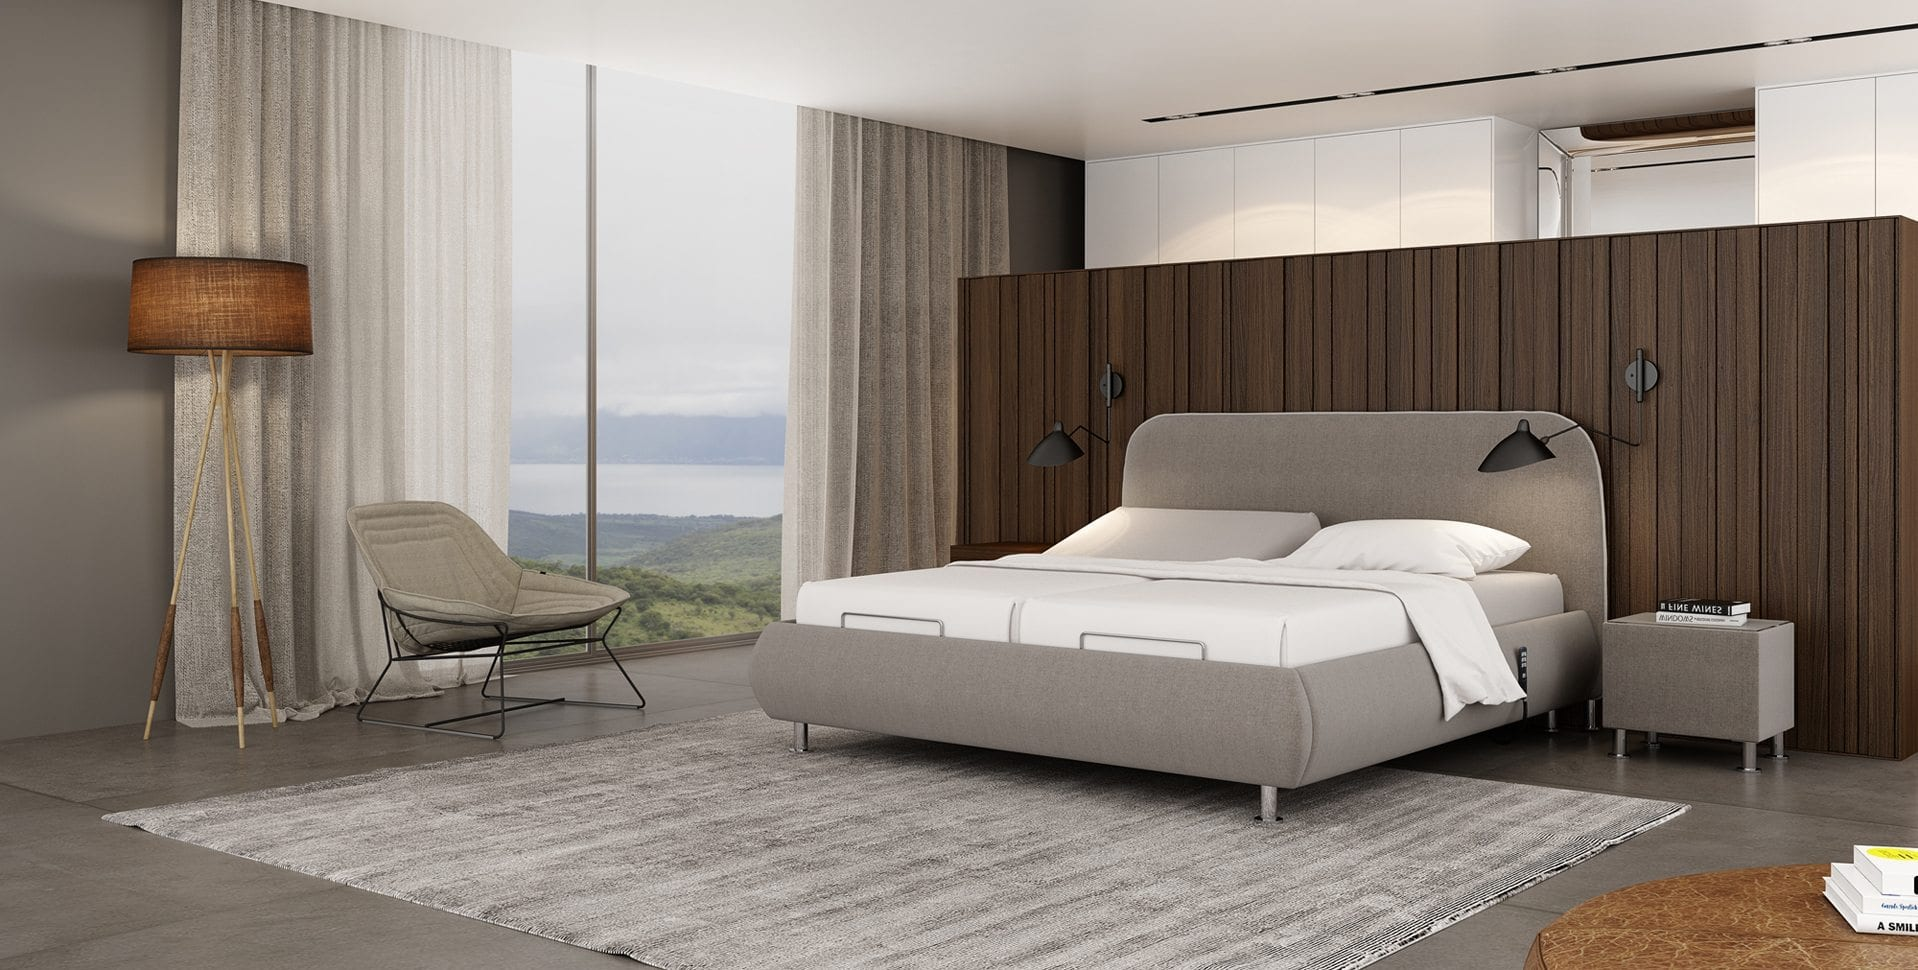 Maayan-Golan_Architectural-Visualization_product-visualization_ Adjustable-bed_american-system_03